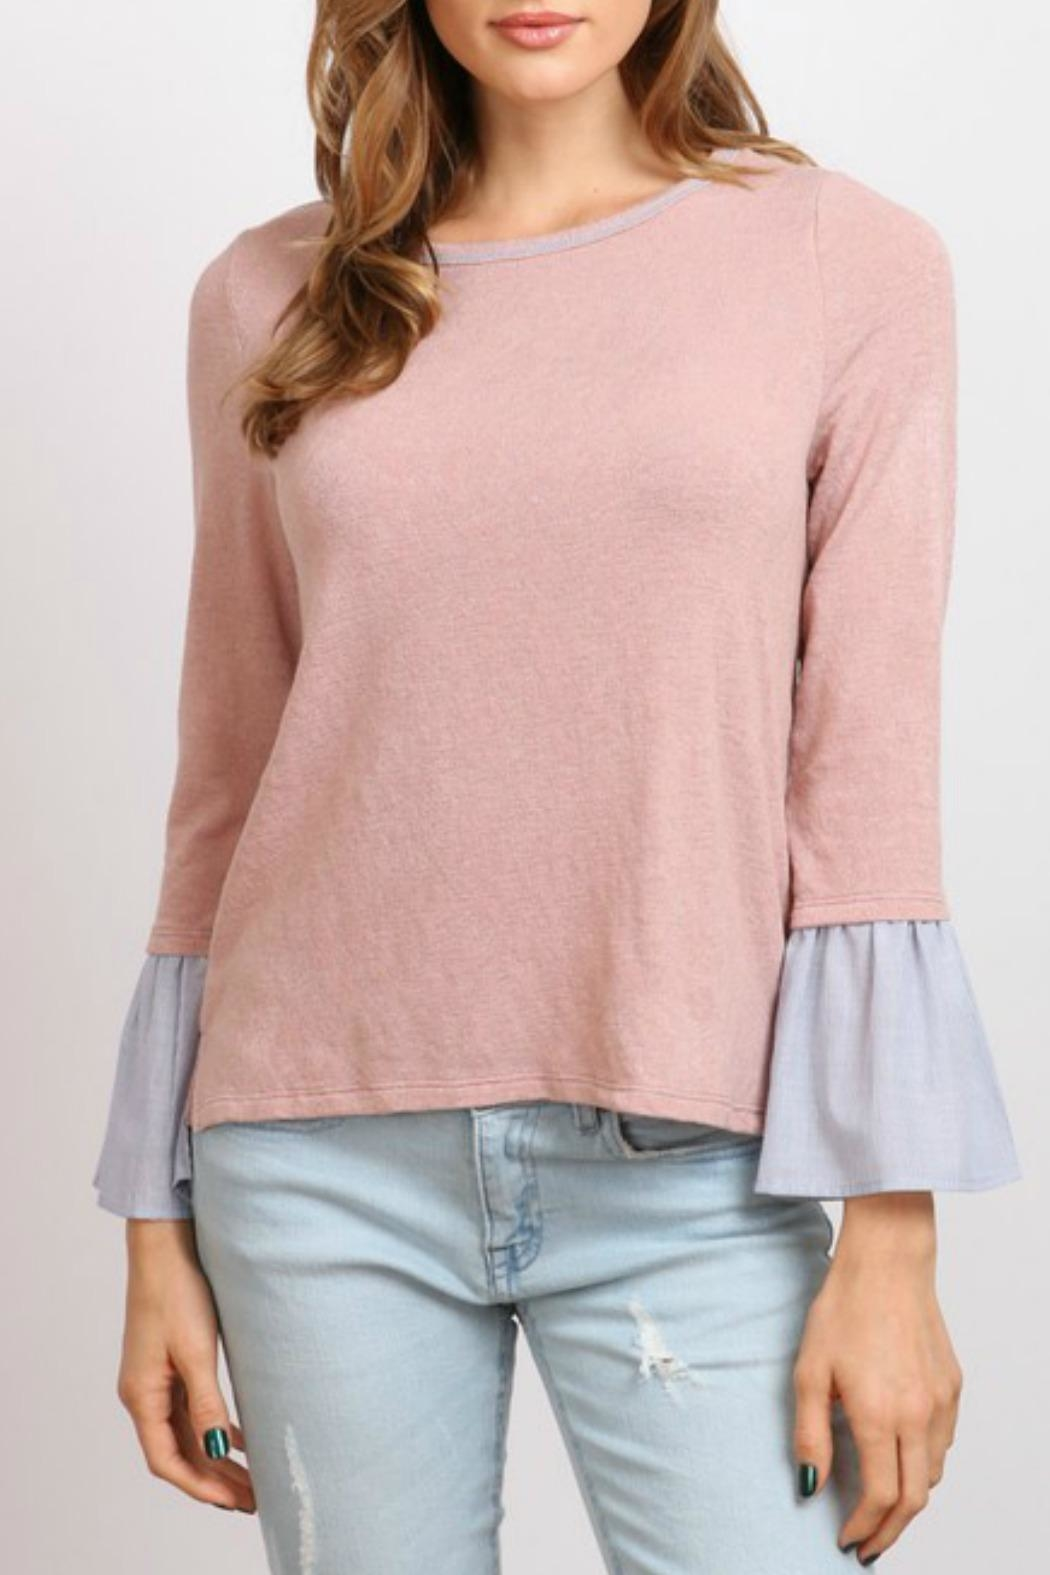 hummingbird Pink Ruffle Sleeve Top - Main Image